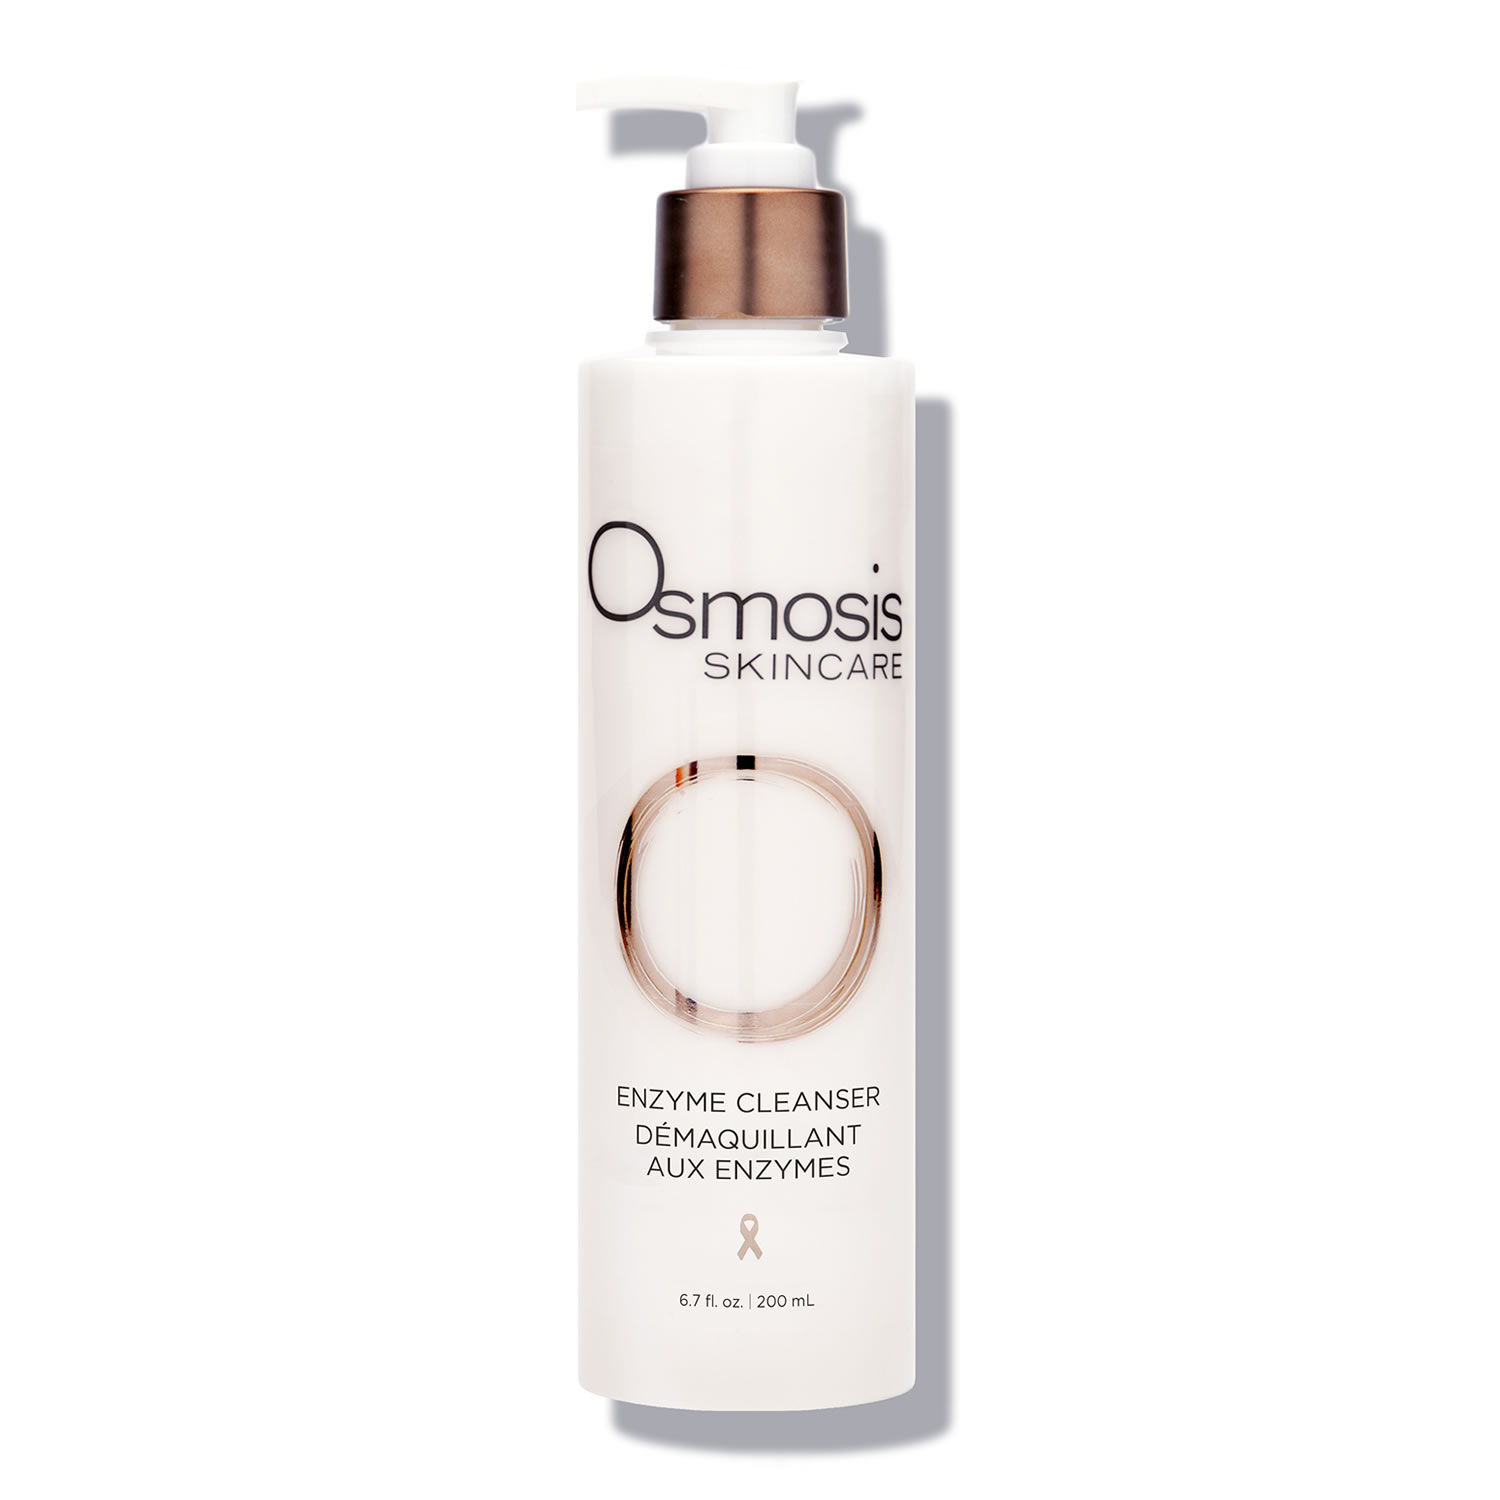 Osmosis +PUR MEDICAL SKINCARE purify - enzyme cleanser (6.7 fl oz / 200 ml)